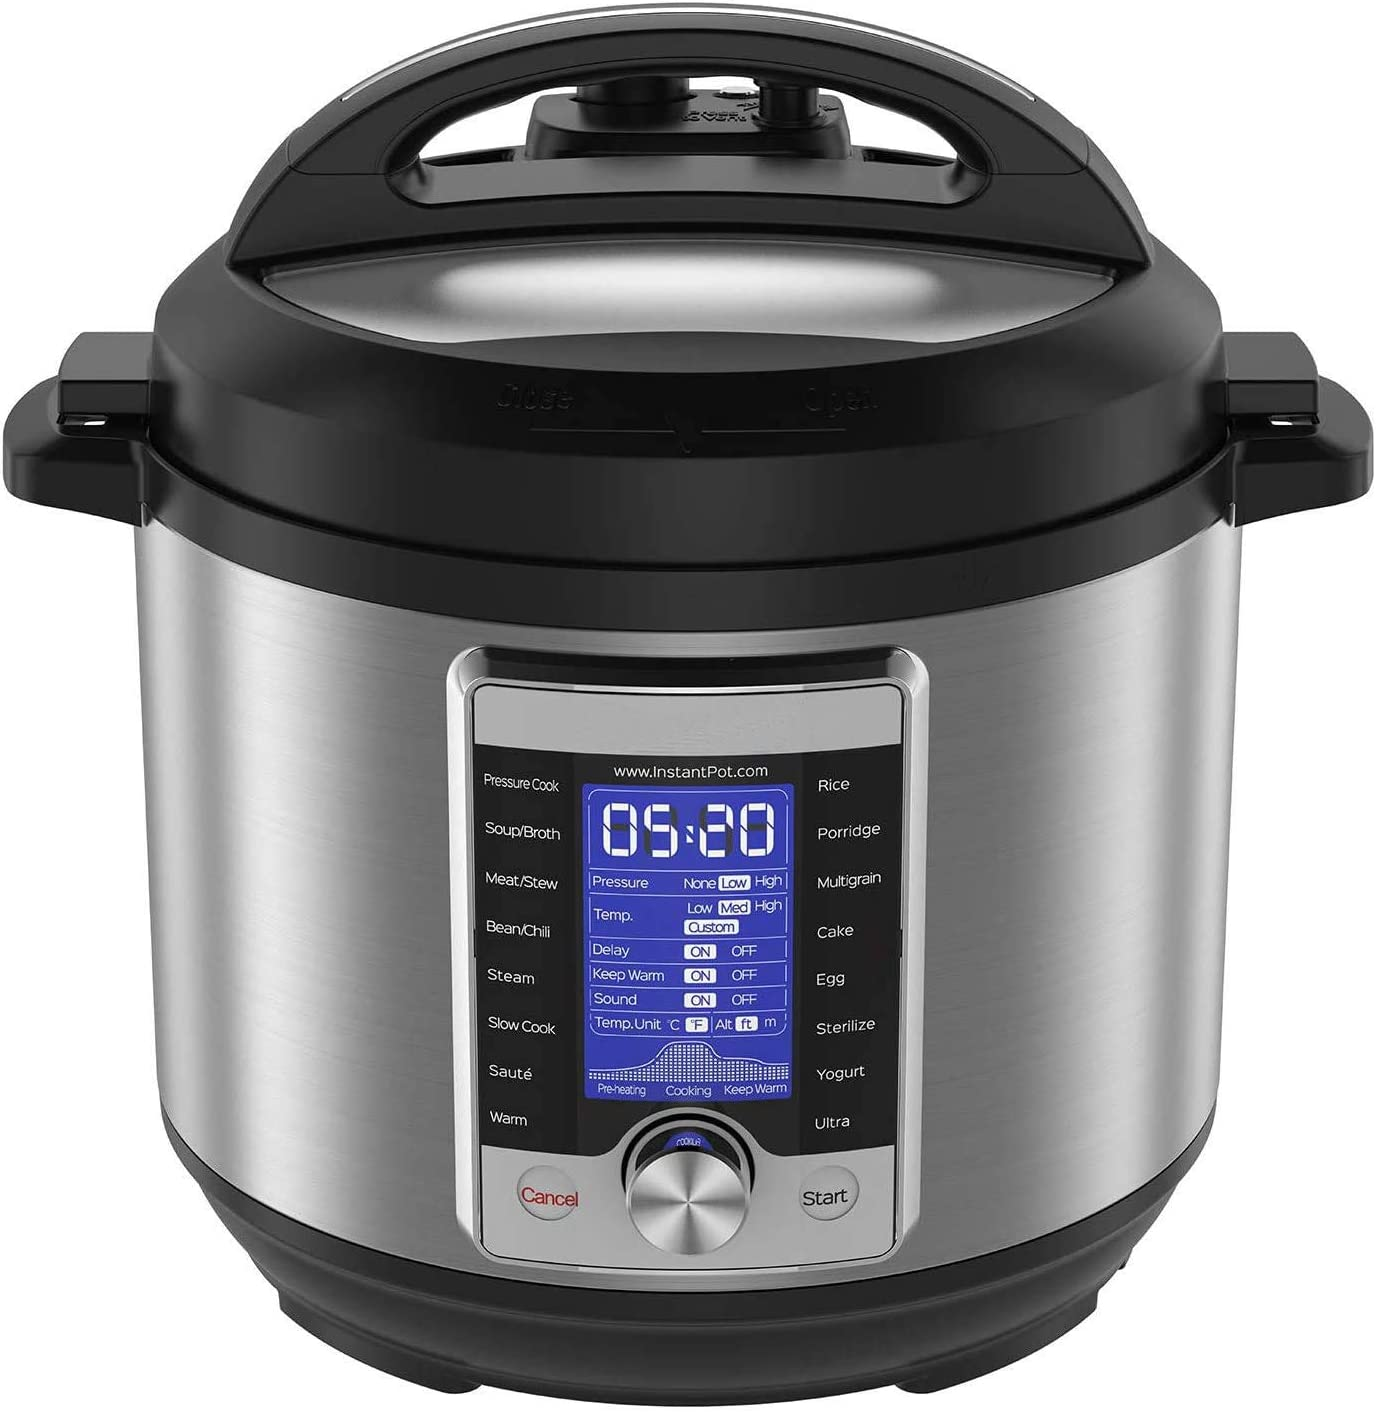 10-in-1 Electric Pressure Cooker, Sterilizer, Slow Cooker, Rice Cooker, 6 Quart, 16 One-Touch Programs & Air Fryer Lid 6 in 1, No Pressure Cooking Functionality, 6 Qt, 1500 W